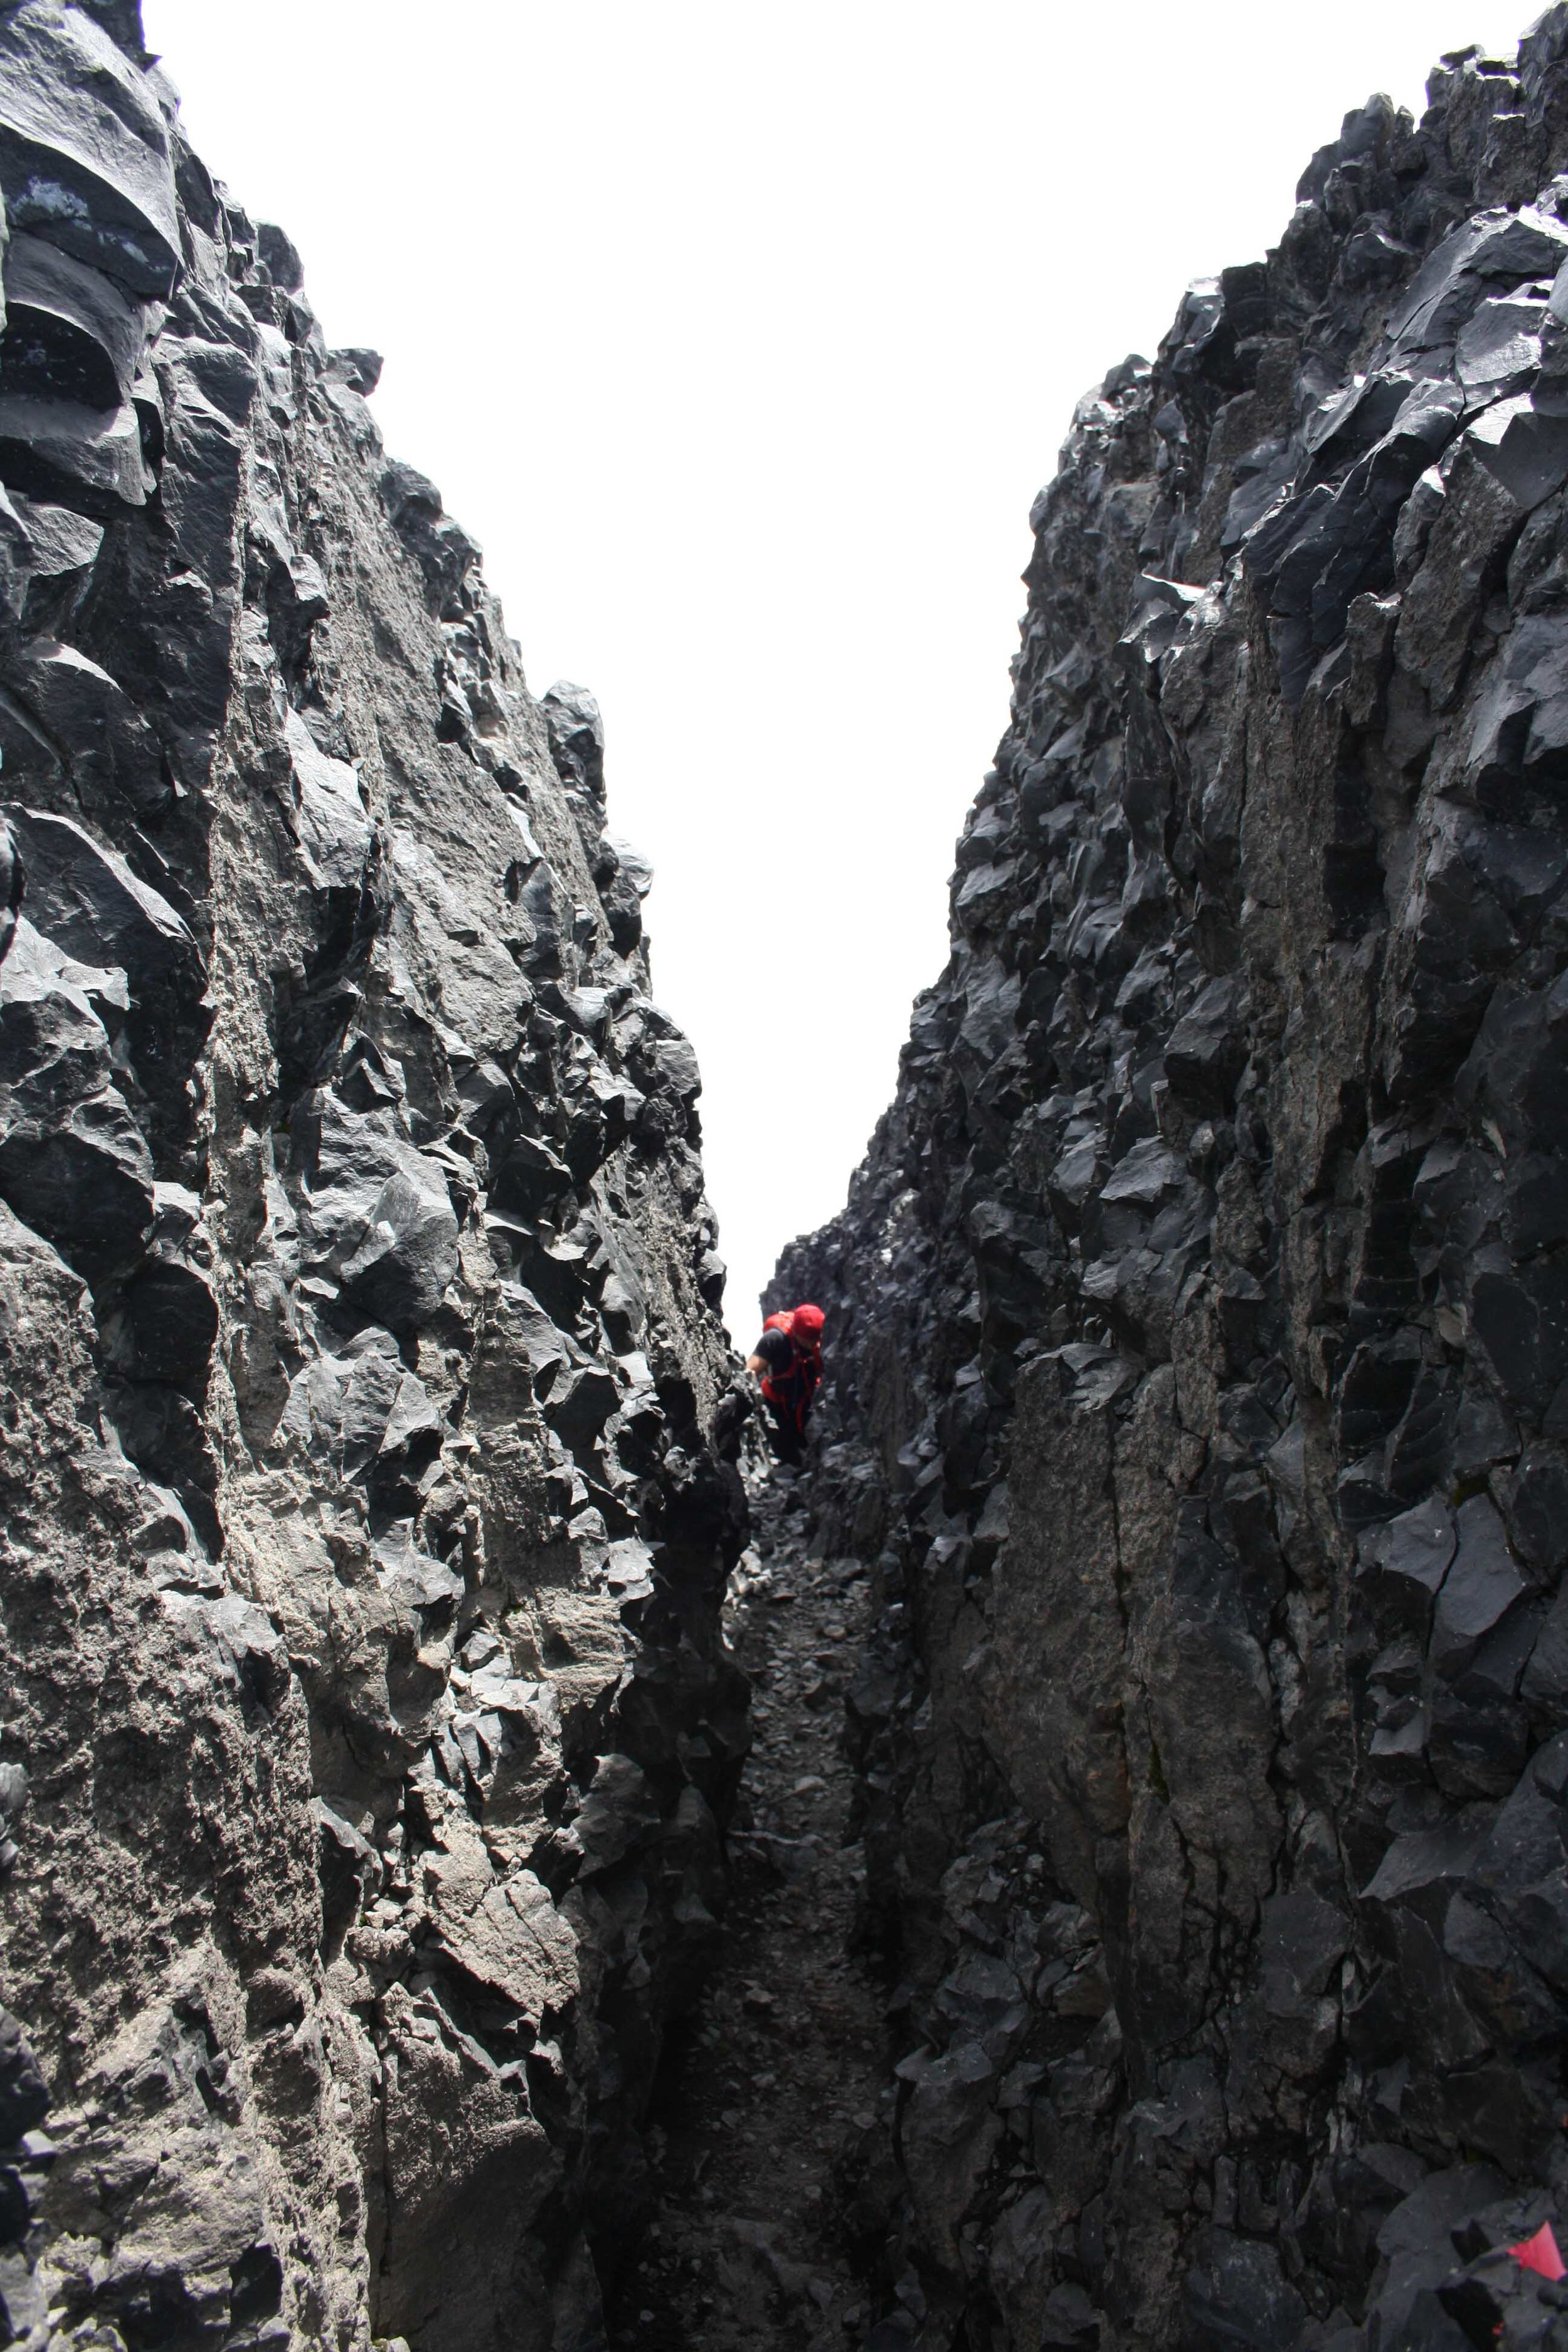 The rock scramble to the tusk was interesting.